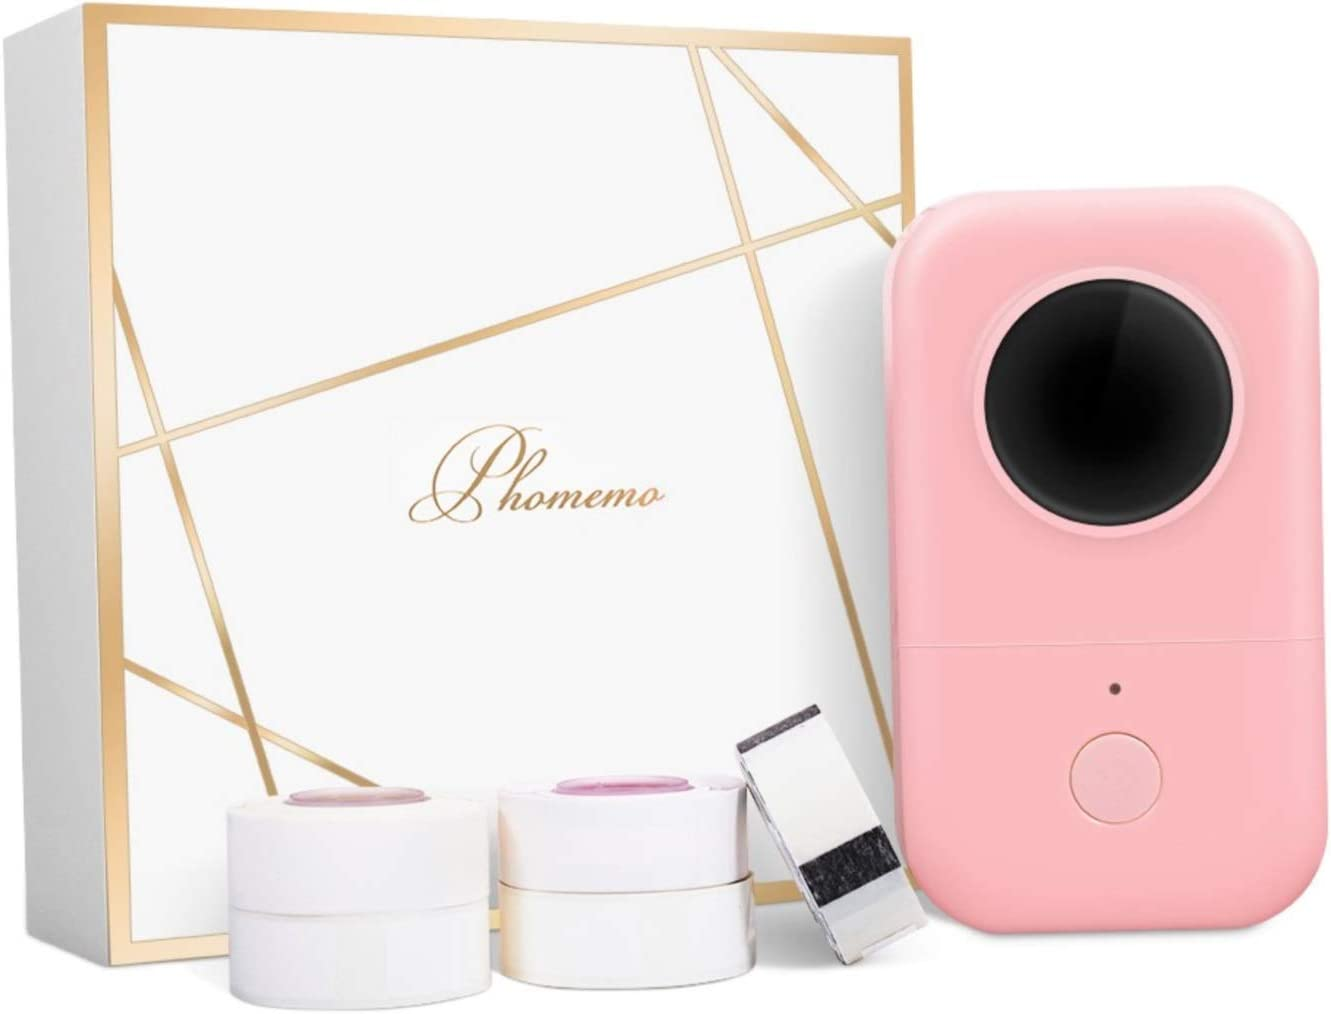 Phomemo D30 Label Maker-with 5 Roll Adhesive Label Thermal Paper Bluetooth Label Maker Thermal Label Printer Paper Mini Easy to Use for Home Office Organization (USB Rechargeable)-Pink